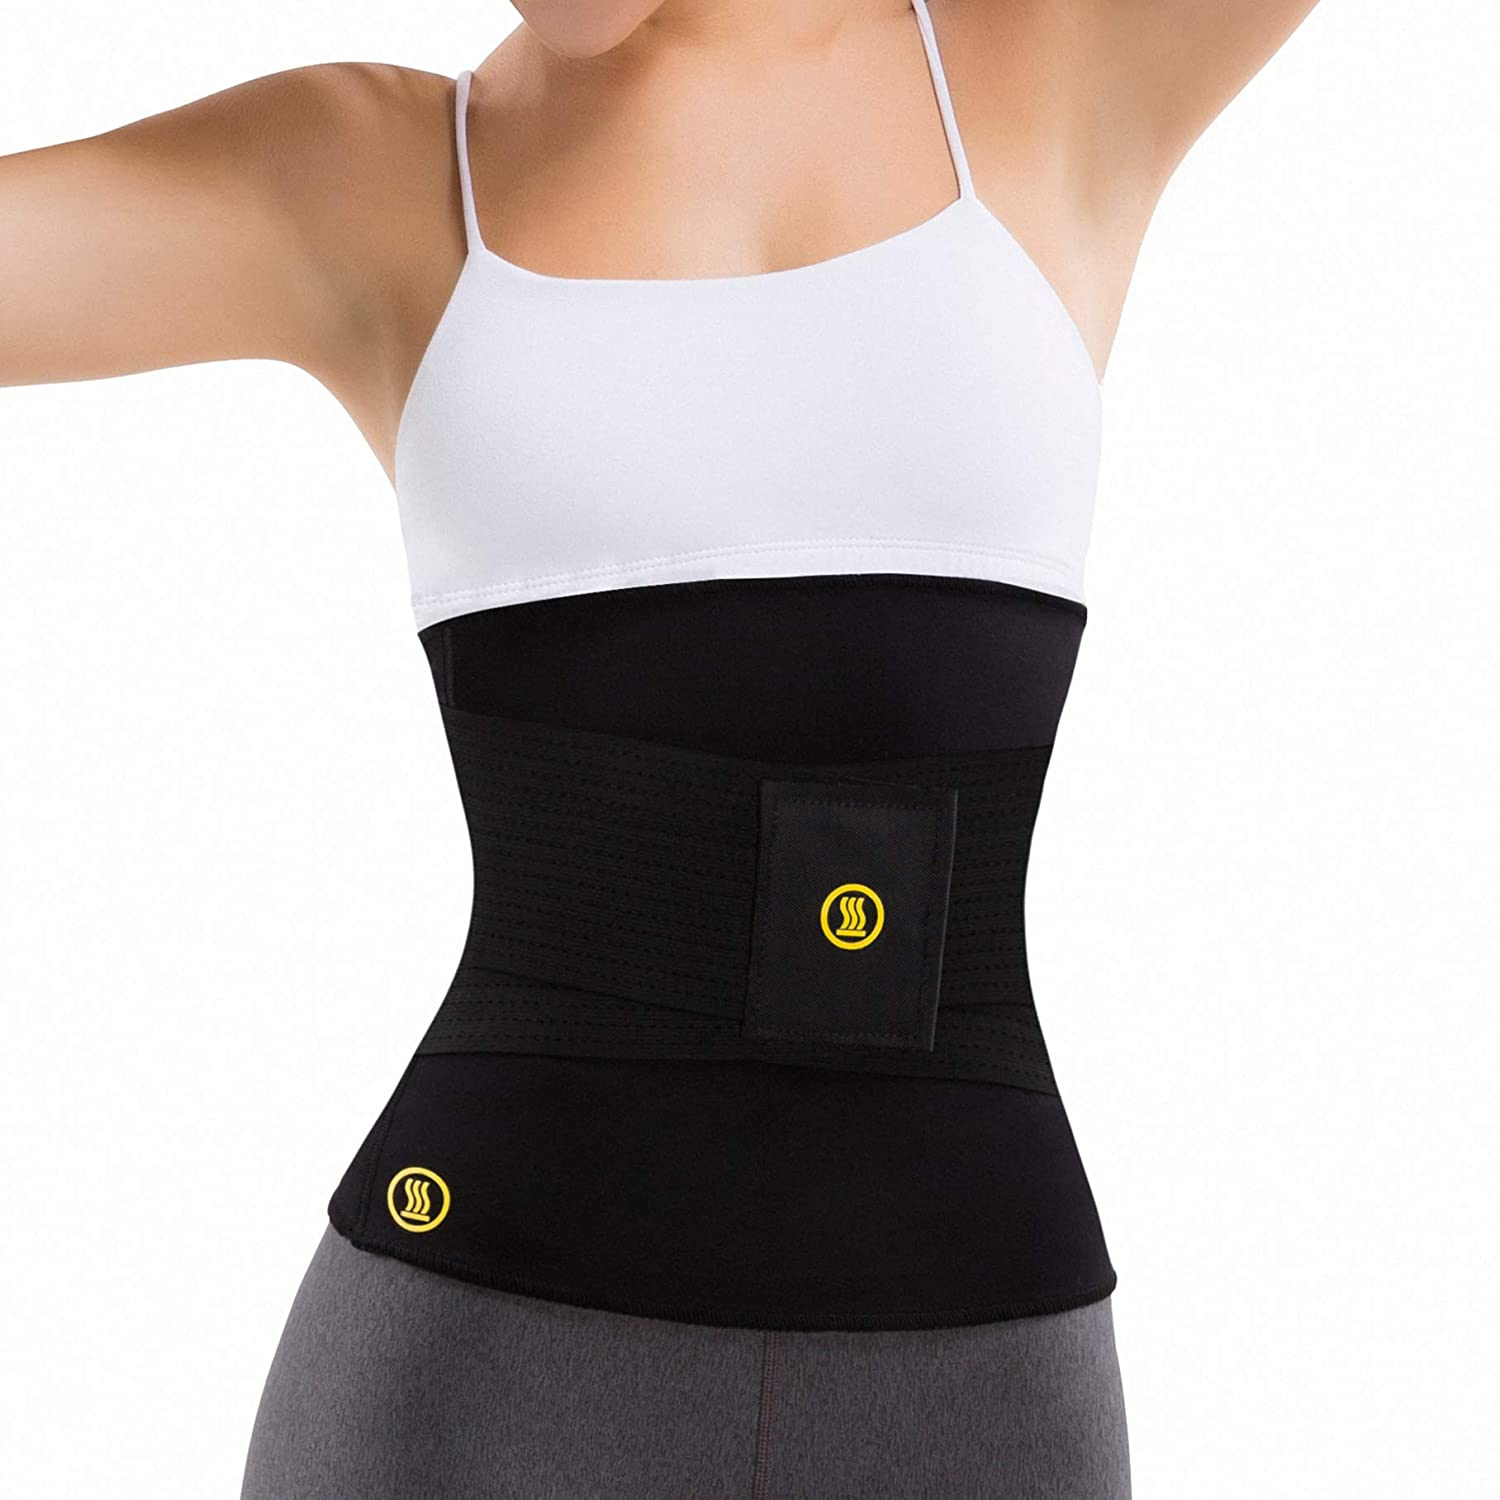 b1127f6eefd22 Hot Shapers Hot Belt with Waist Trainer – Women s Sweat Waist Trimmer Corset